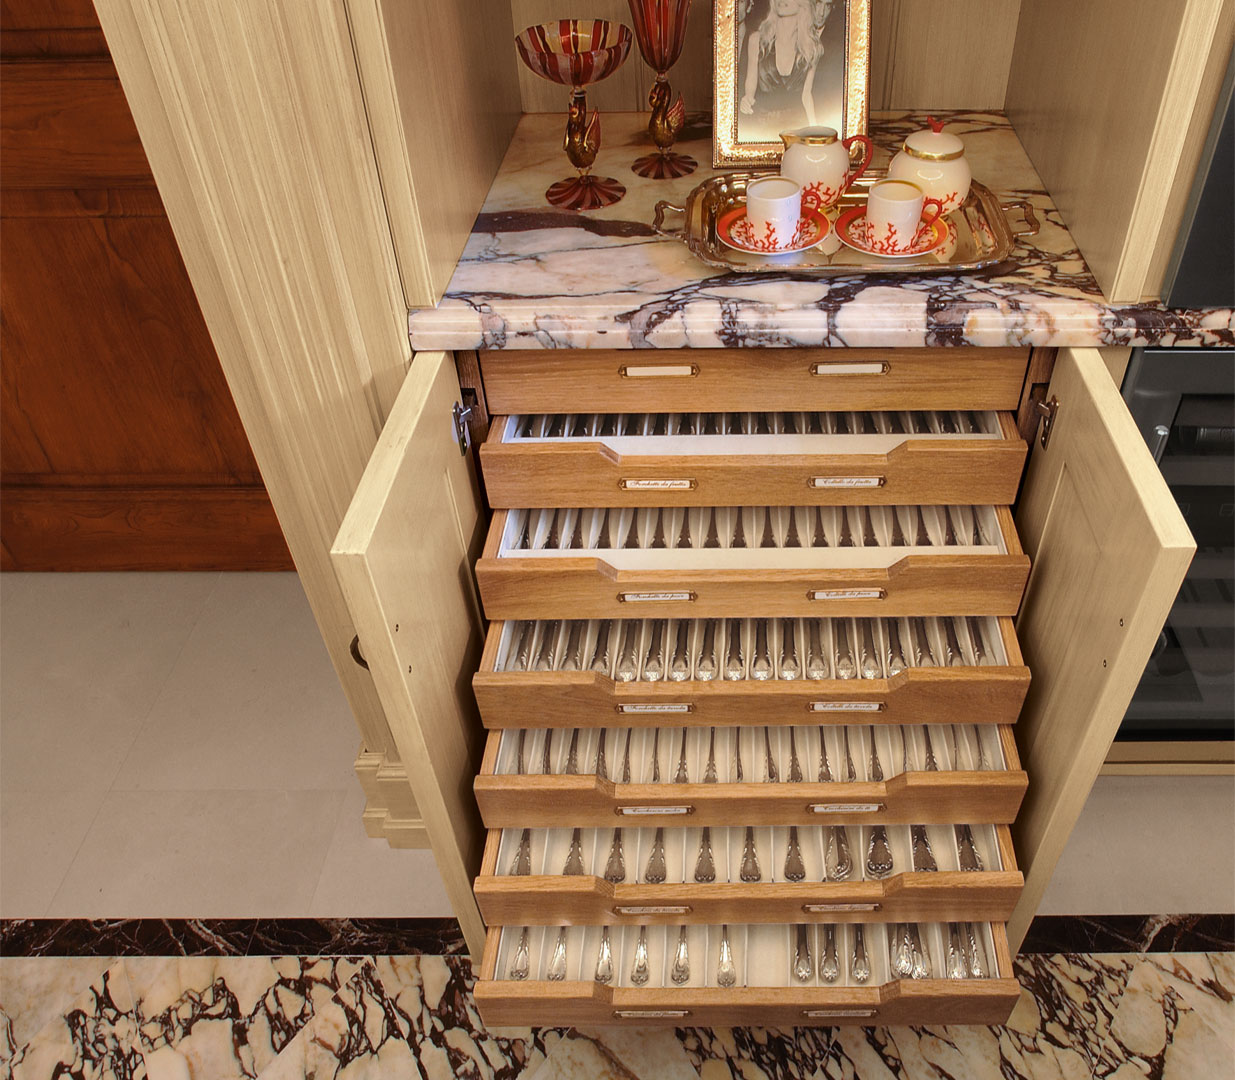 The dining service is stored in fabric lined drawers